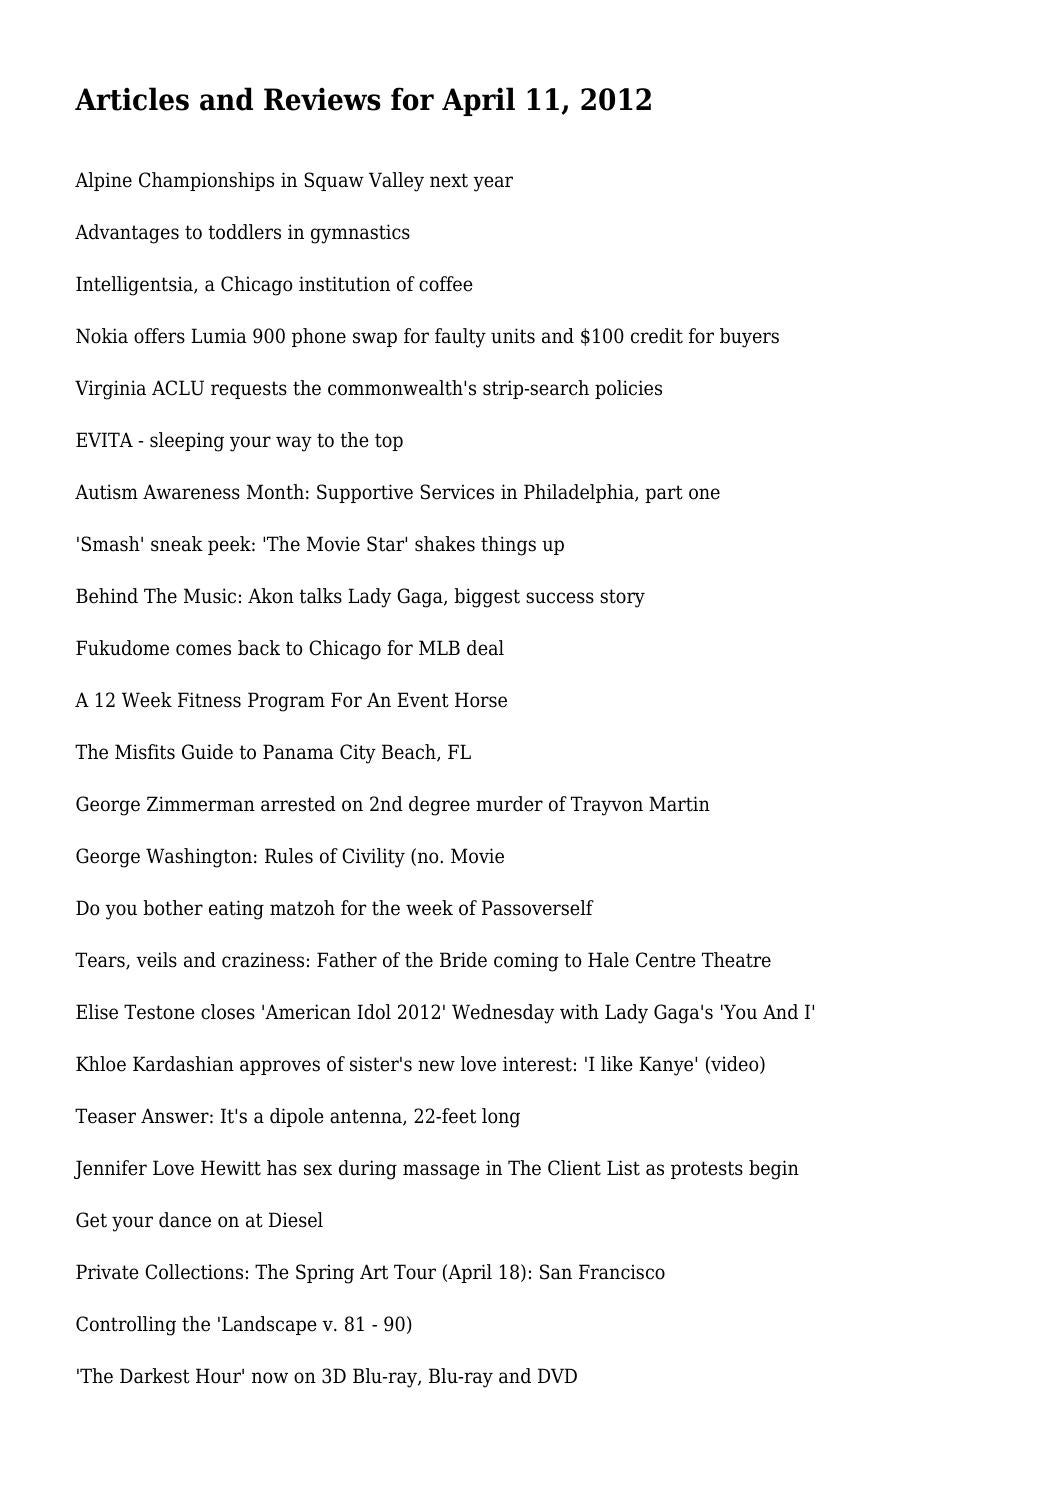 Articles and Reviews for April 11, 2012 by pricklycostume293 - issuu